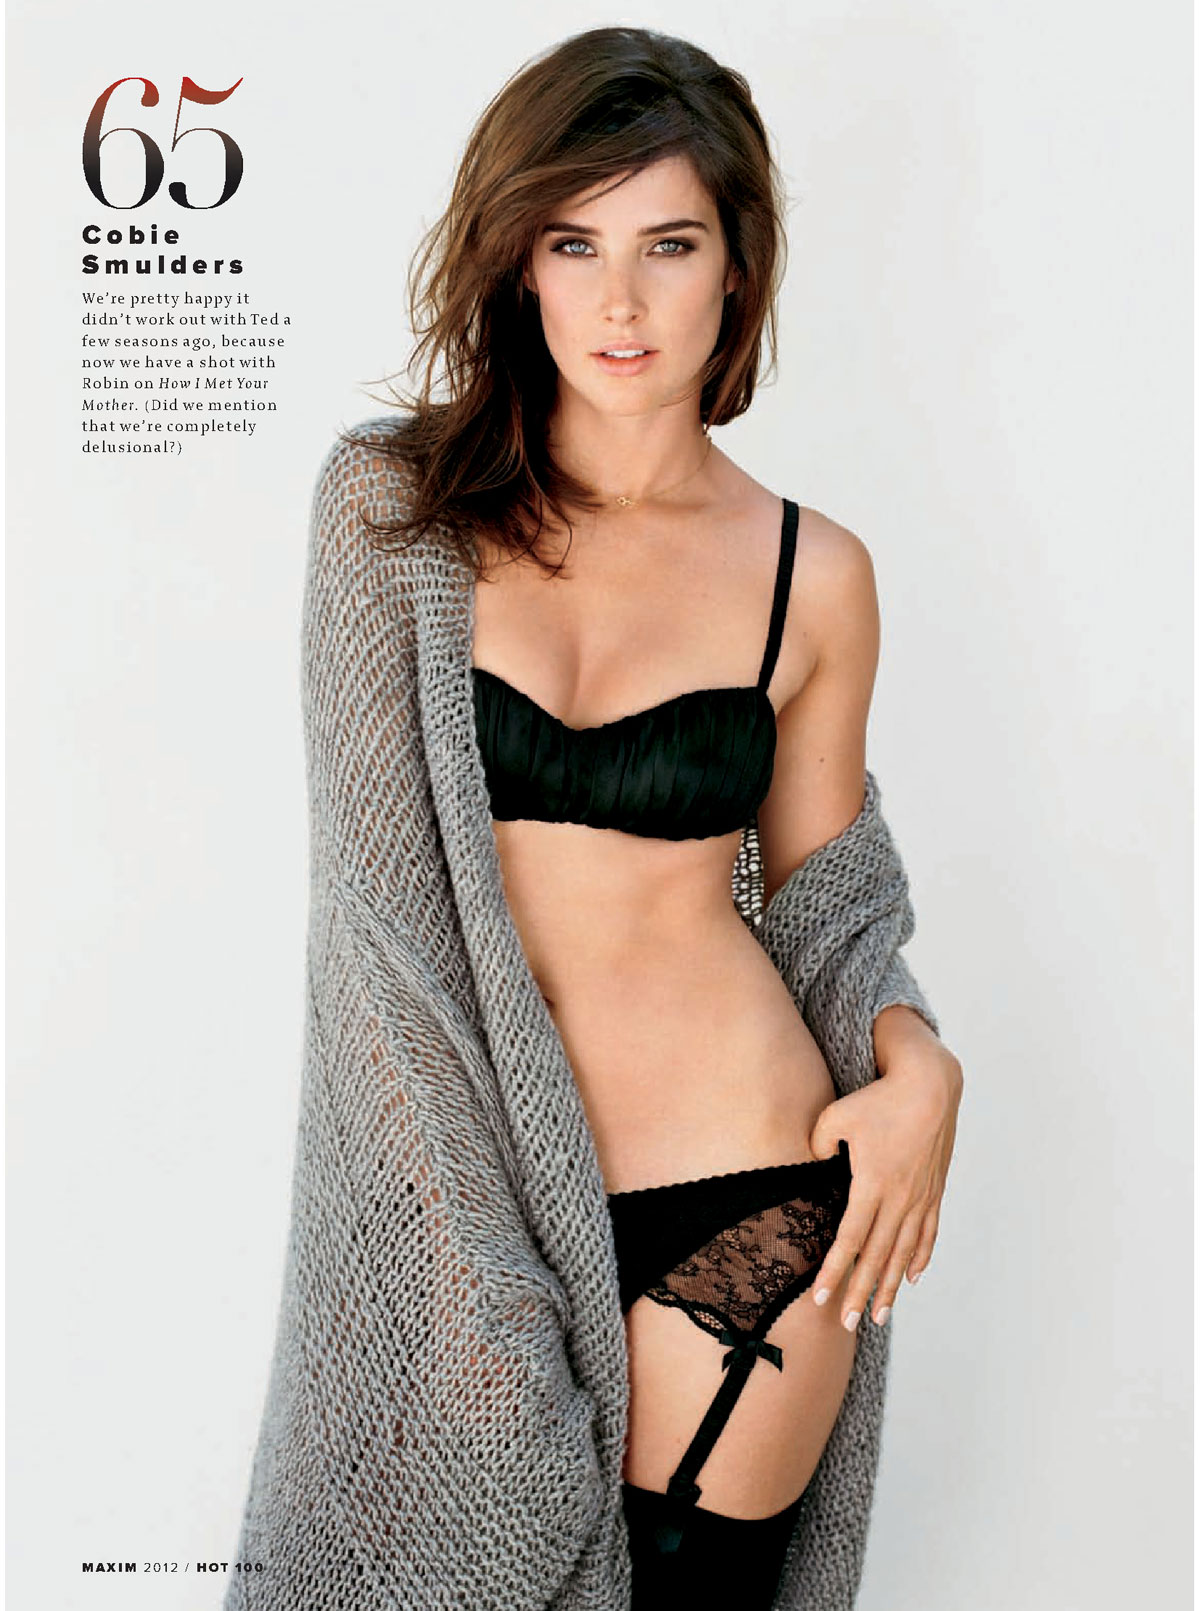 Cobie Smulders Hot Images & Pictures - Becuo